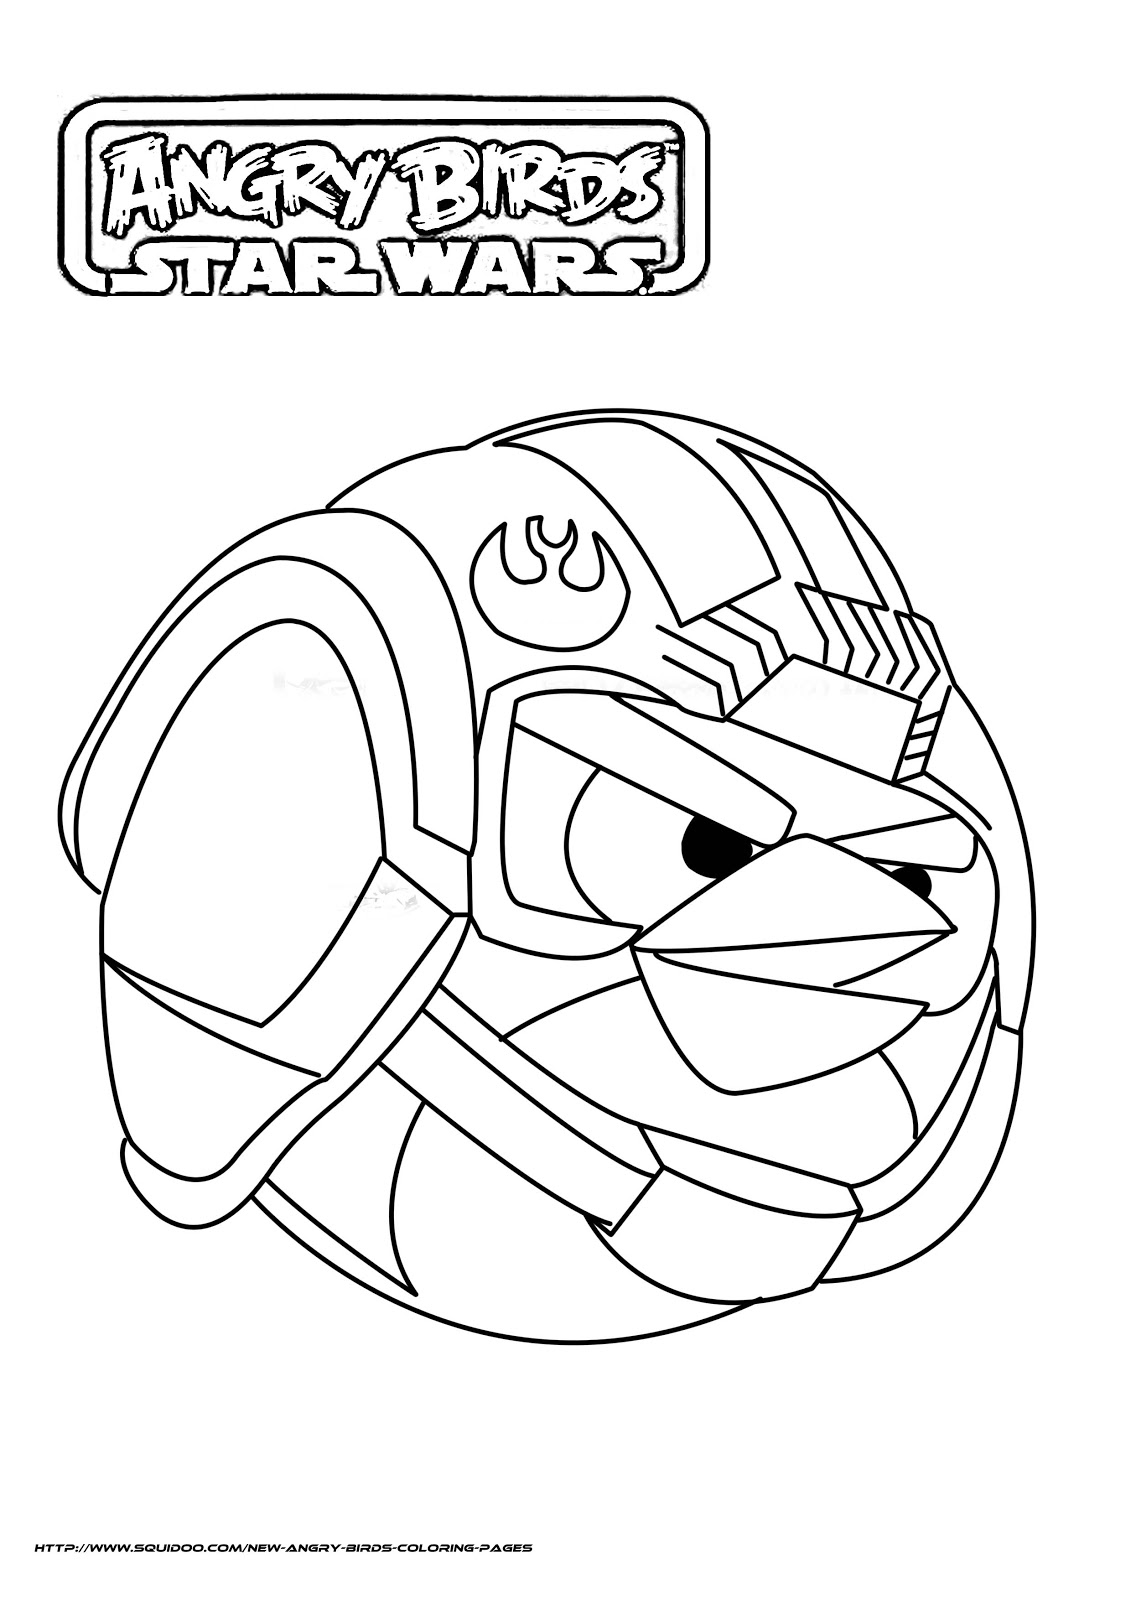 1131x1600 Angry Birds Star Wars Coloring Pages On Angry Bird Azul Blue Para